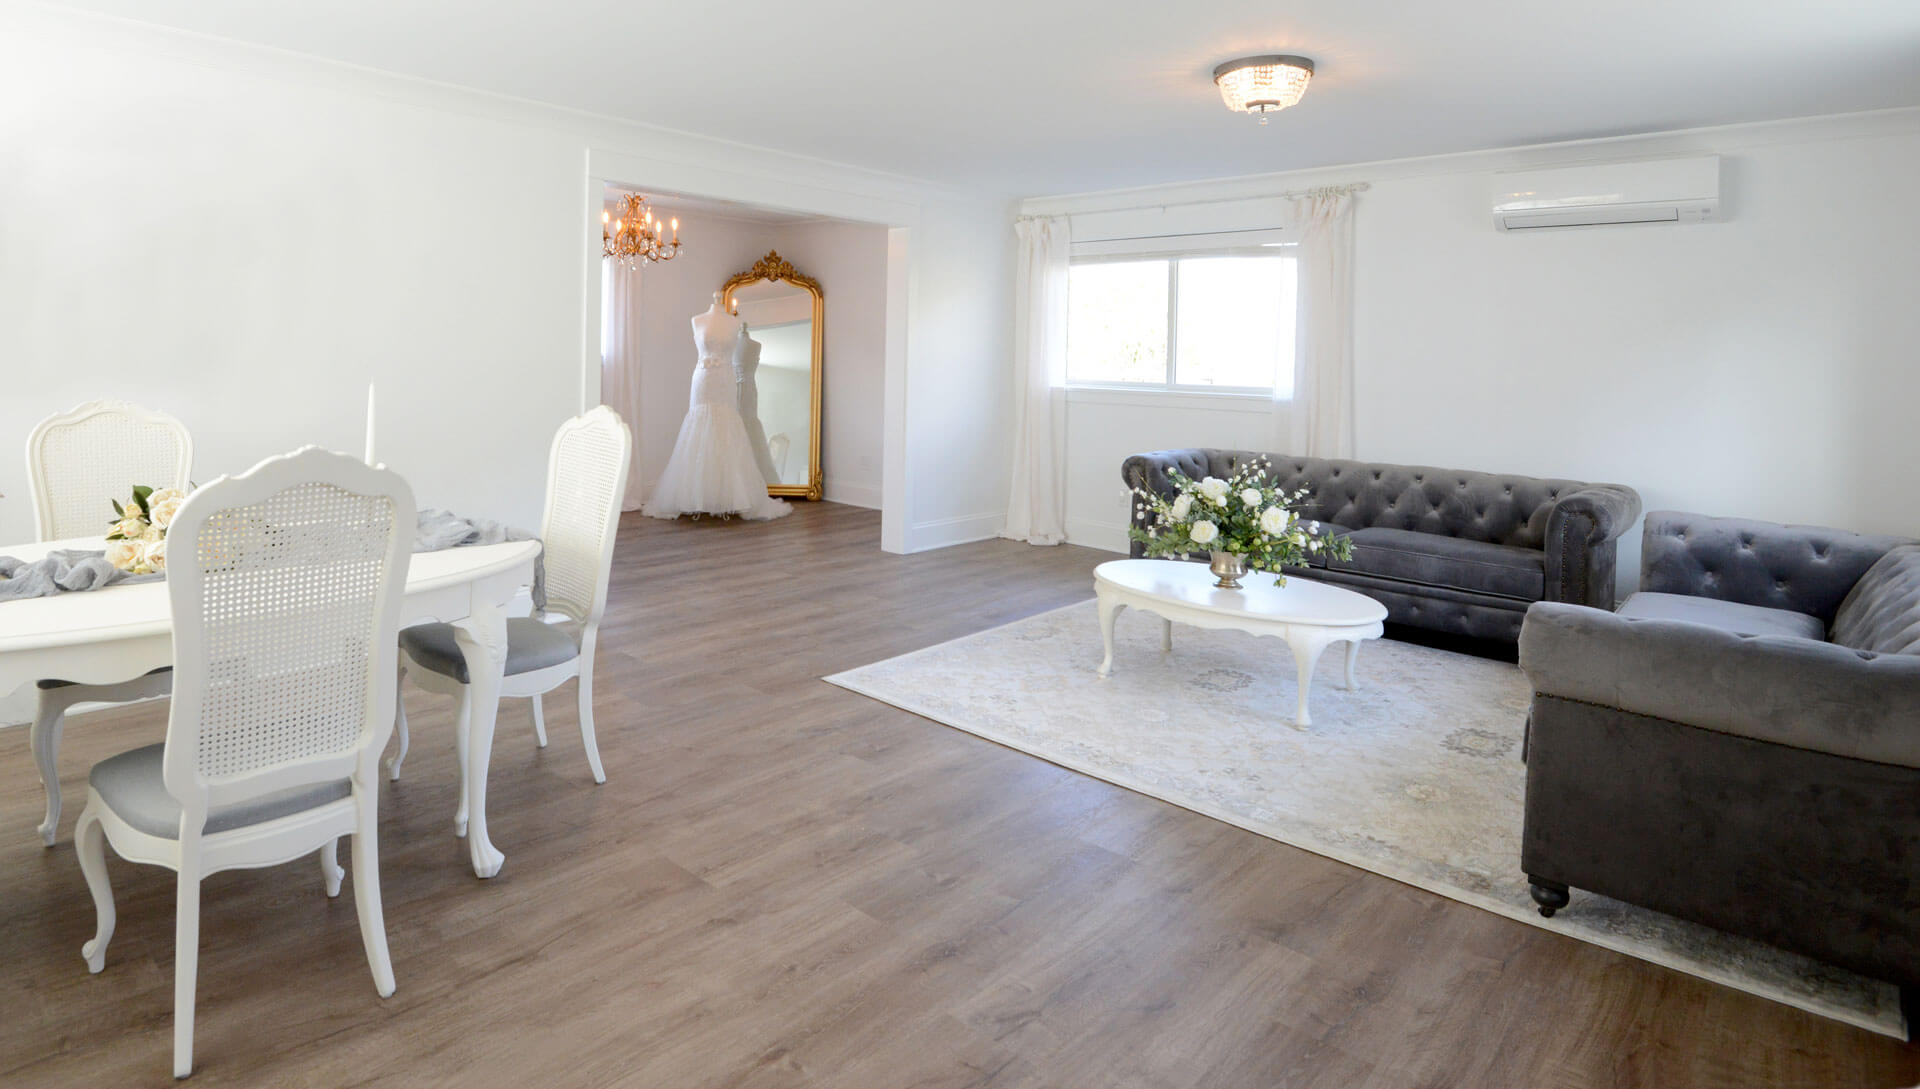 Bridal cottage with gray velvet sofas, french country dining set, and full length gold mirror